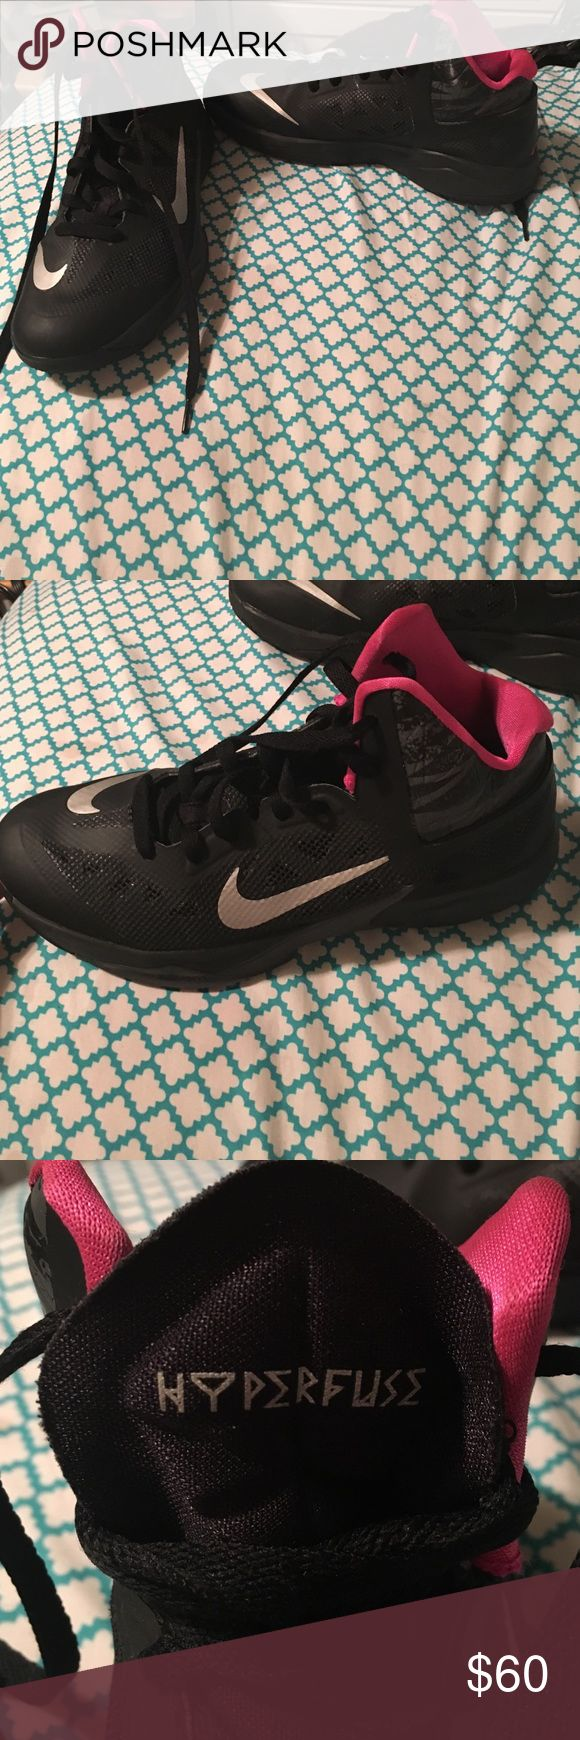 Basketball shoes Black and pink basketball shoes only worn twice, practically new Shoes Athletic Shoes